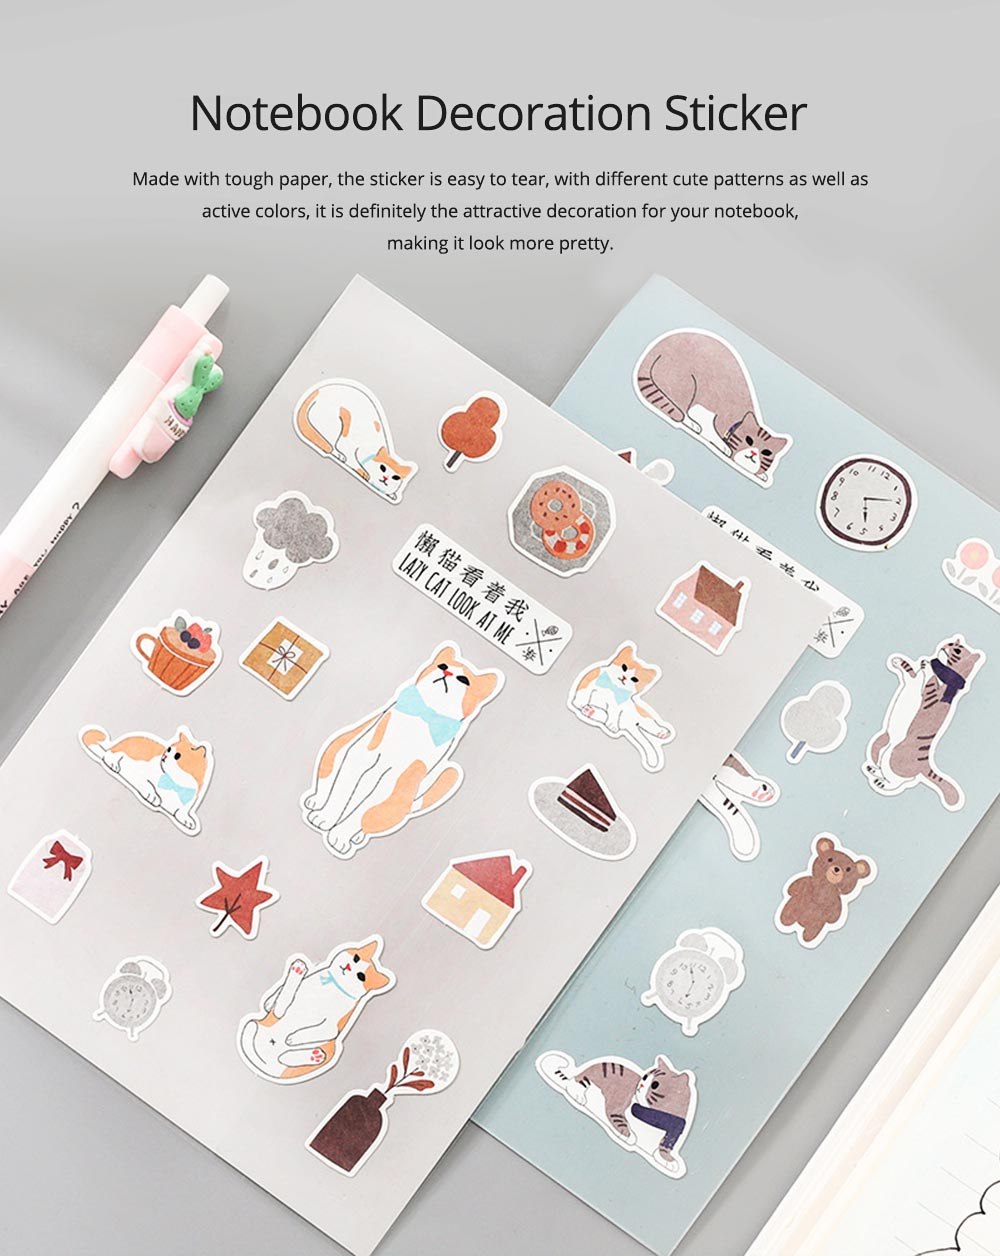 Notebook Decoration Sticker with Cute Different Pattern Bright Active Color Paper Sticker 0